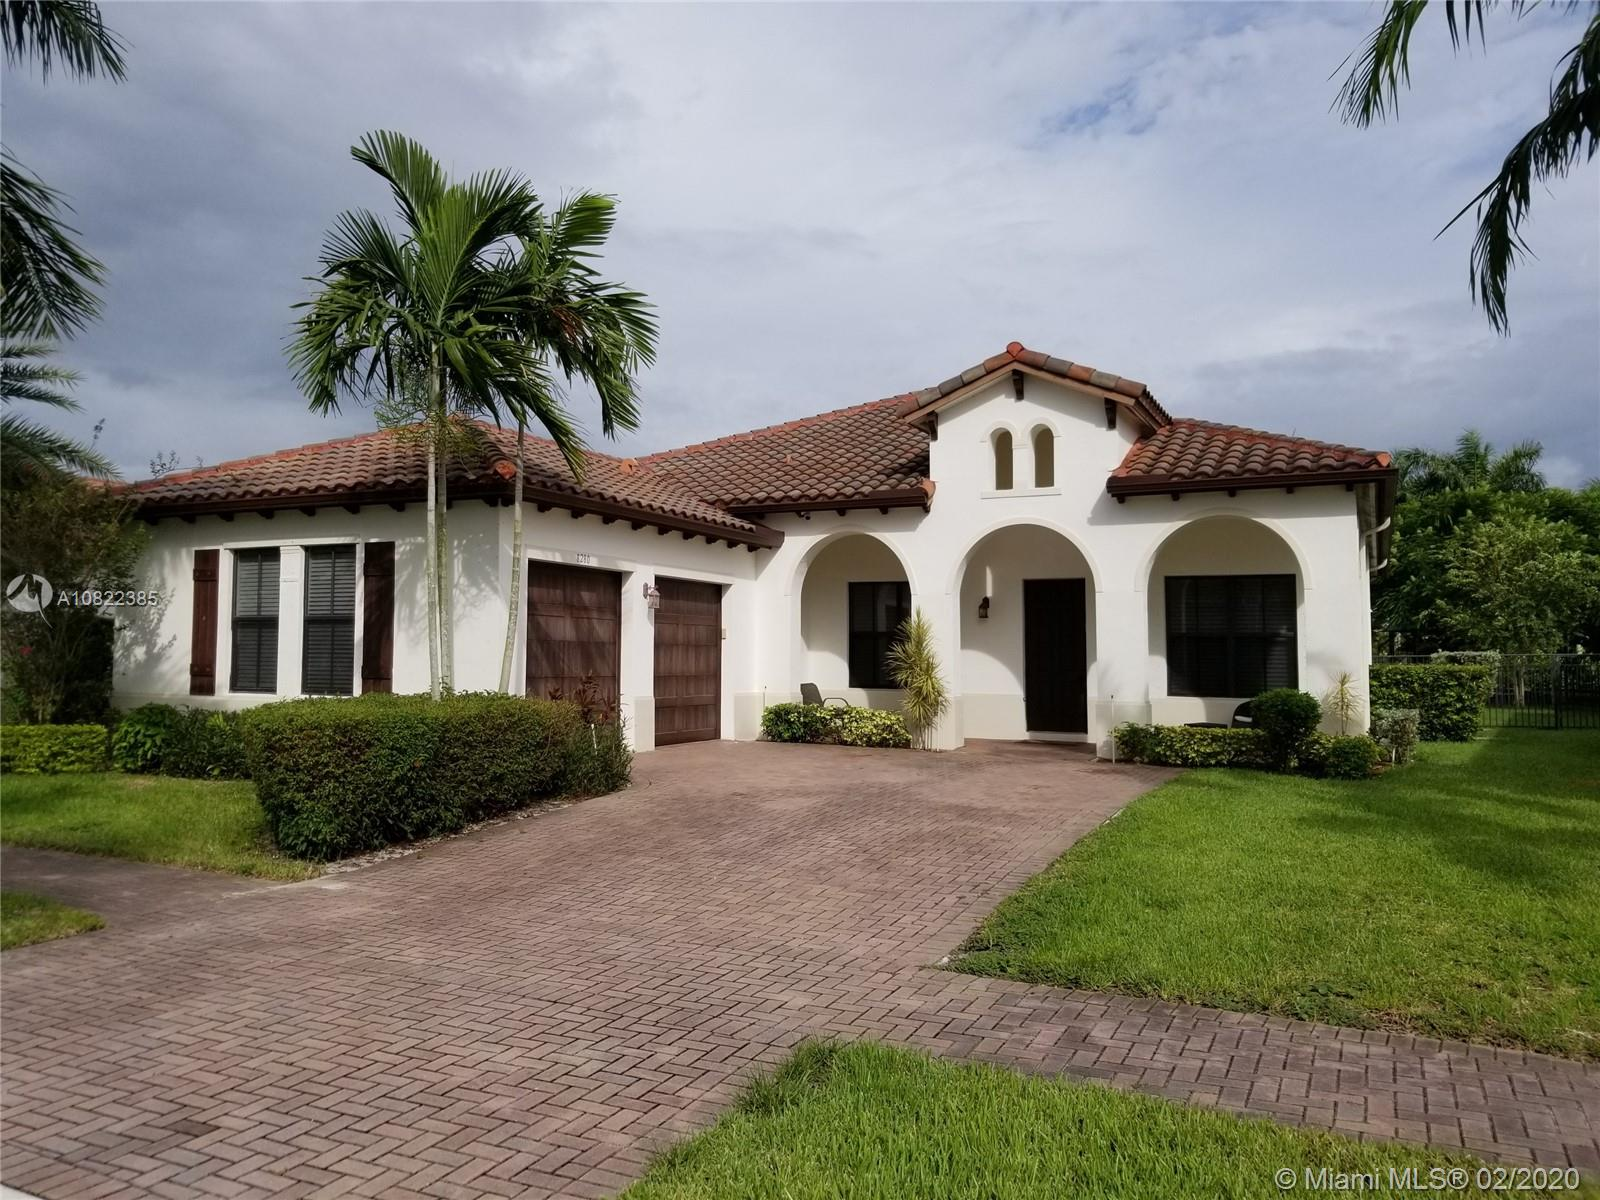 8280 NW 28th St, one of homes for sale in Cooper City